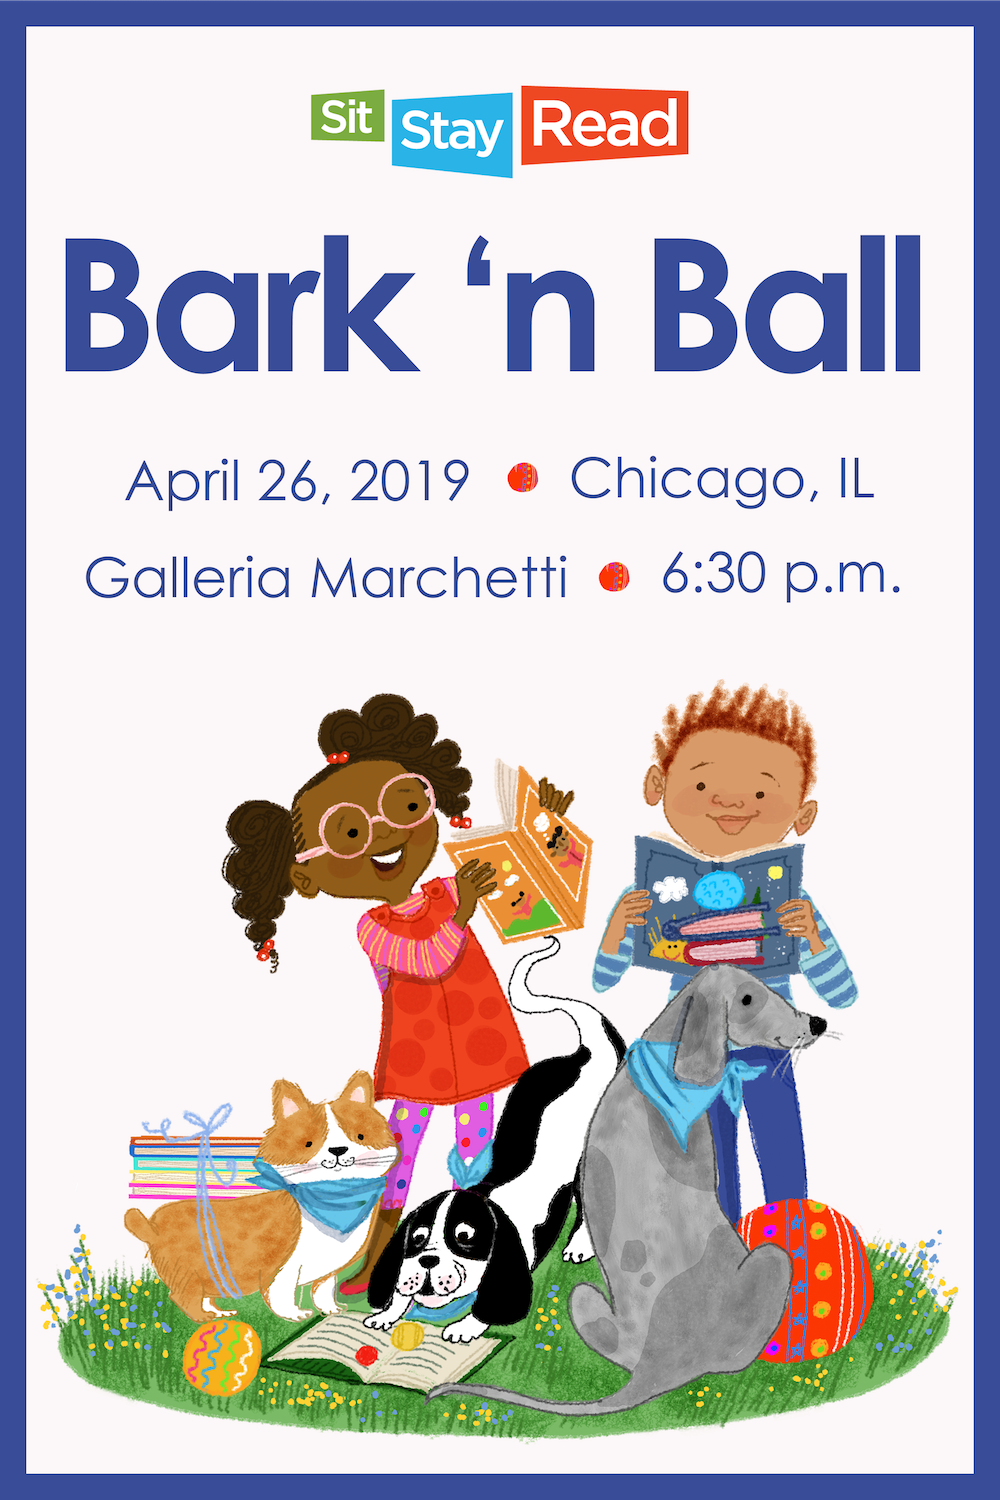 This year's Bark 'n Ball poster, designed by author and illustrator Vanessa Brantley-Newton!